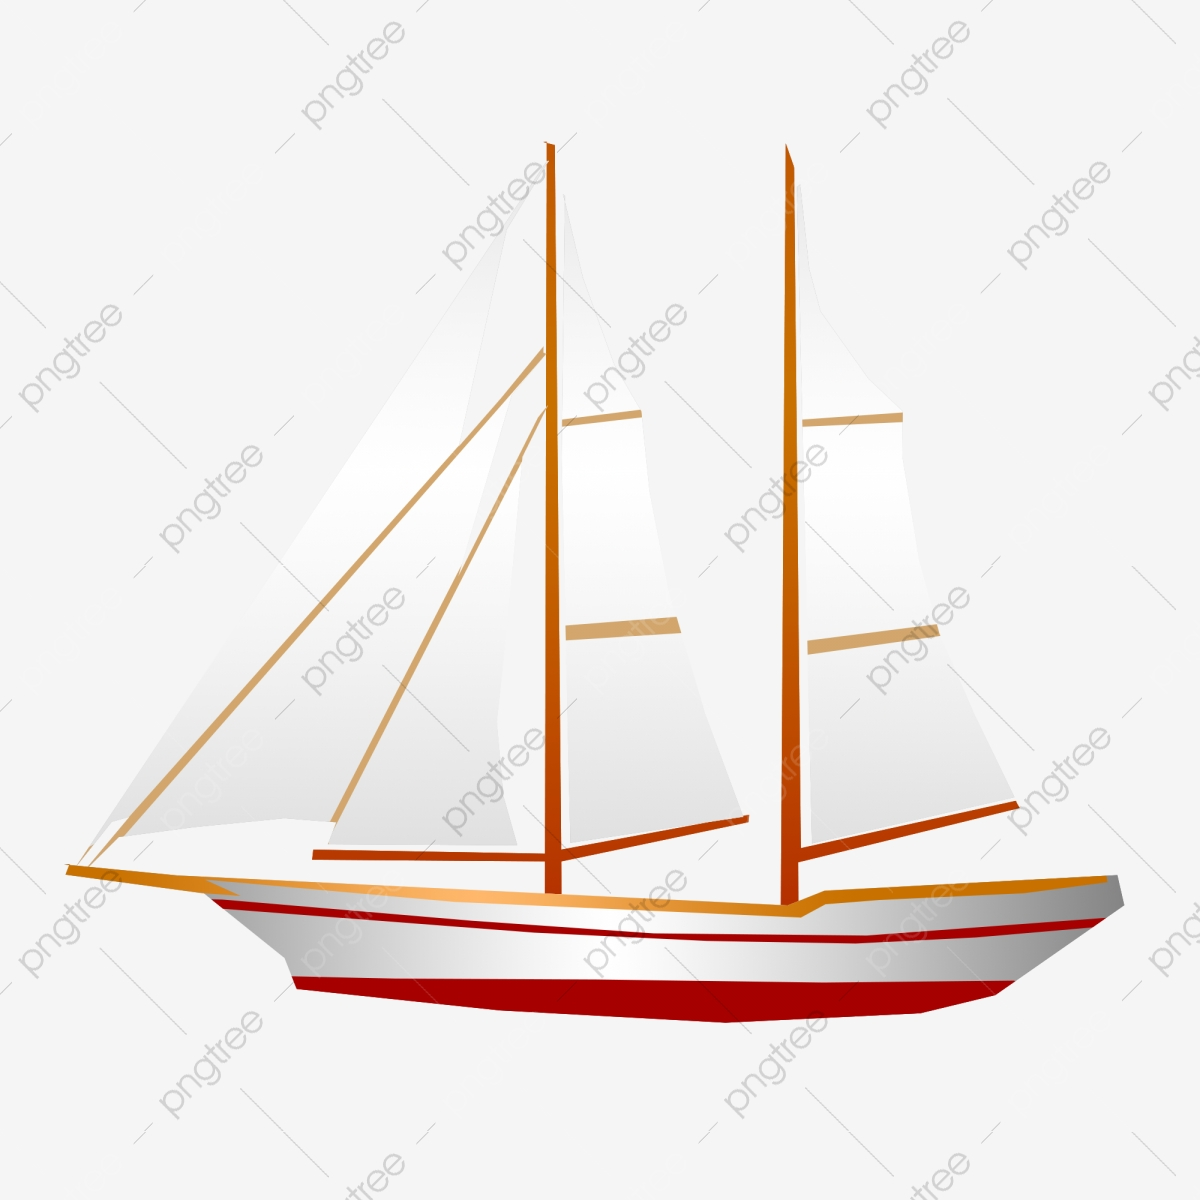 Boating clipart two ship. Hand drawn sailboat red